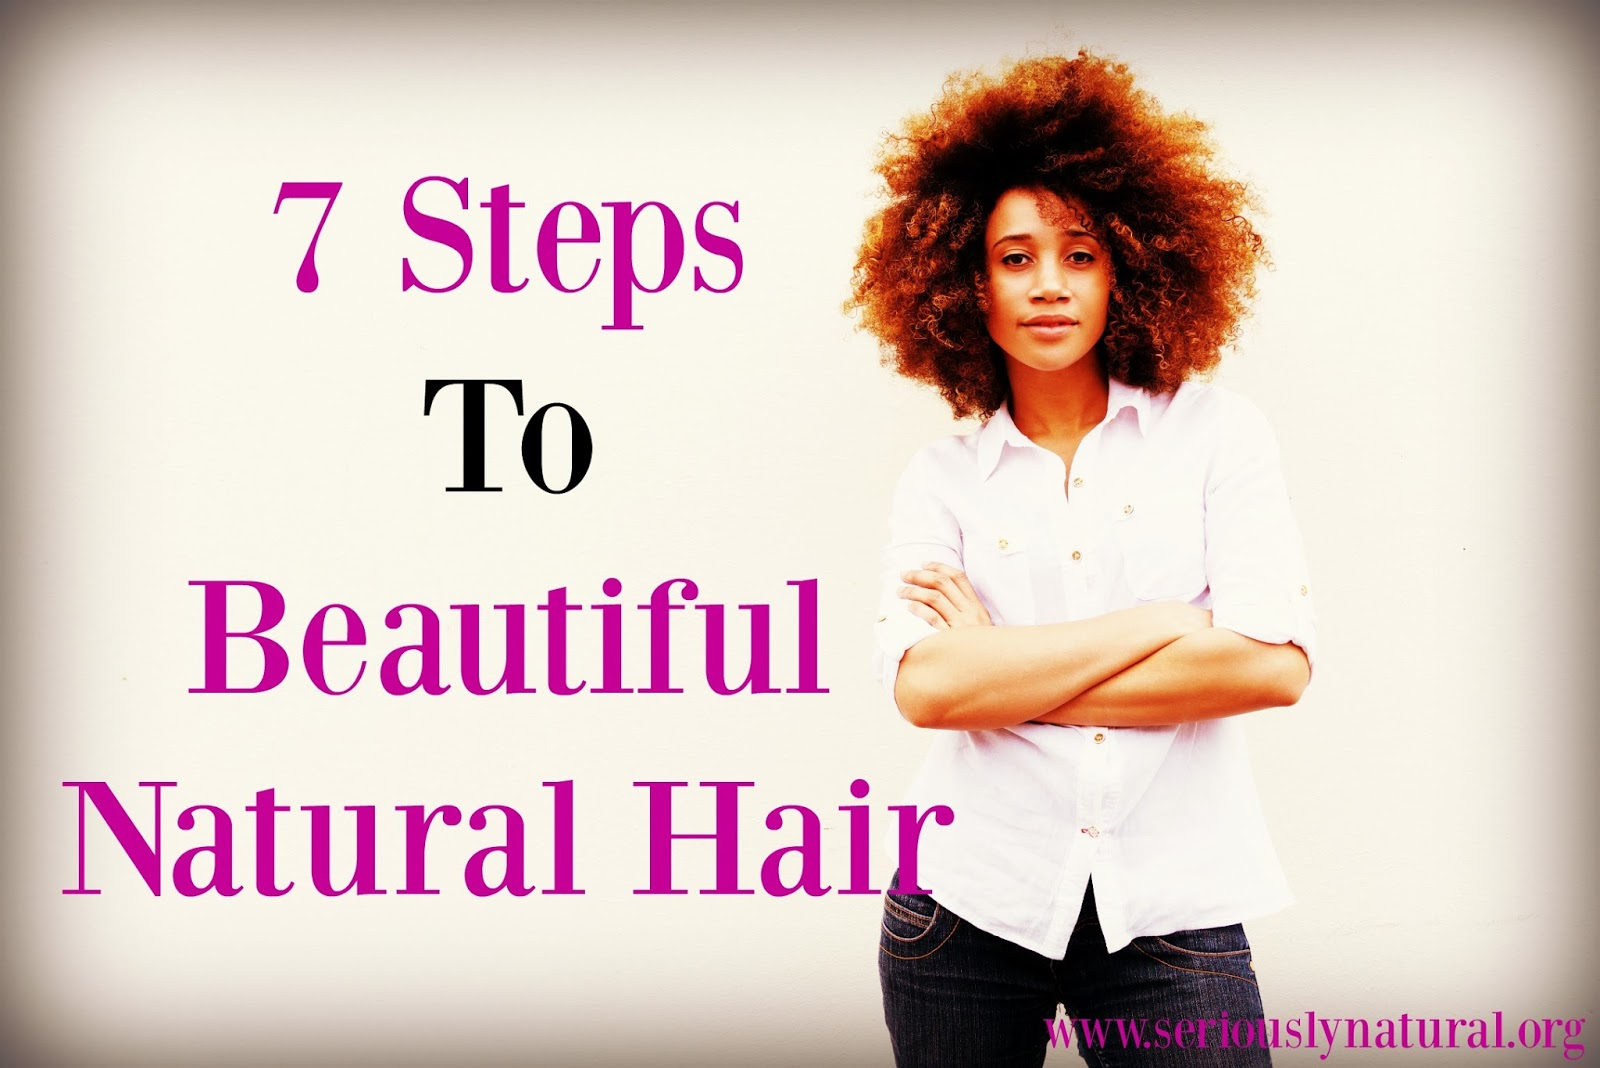 7 Steps to Determine The Perfect Products for Beautiful Natural Hair